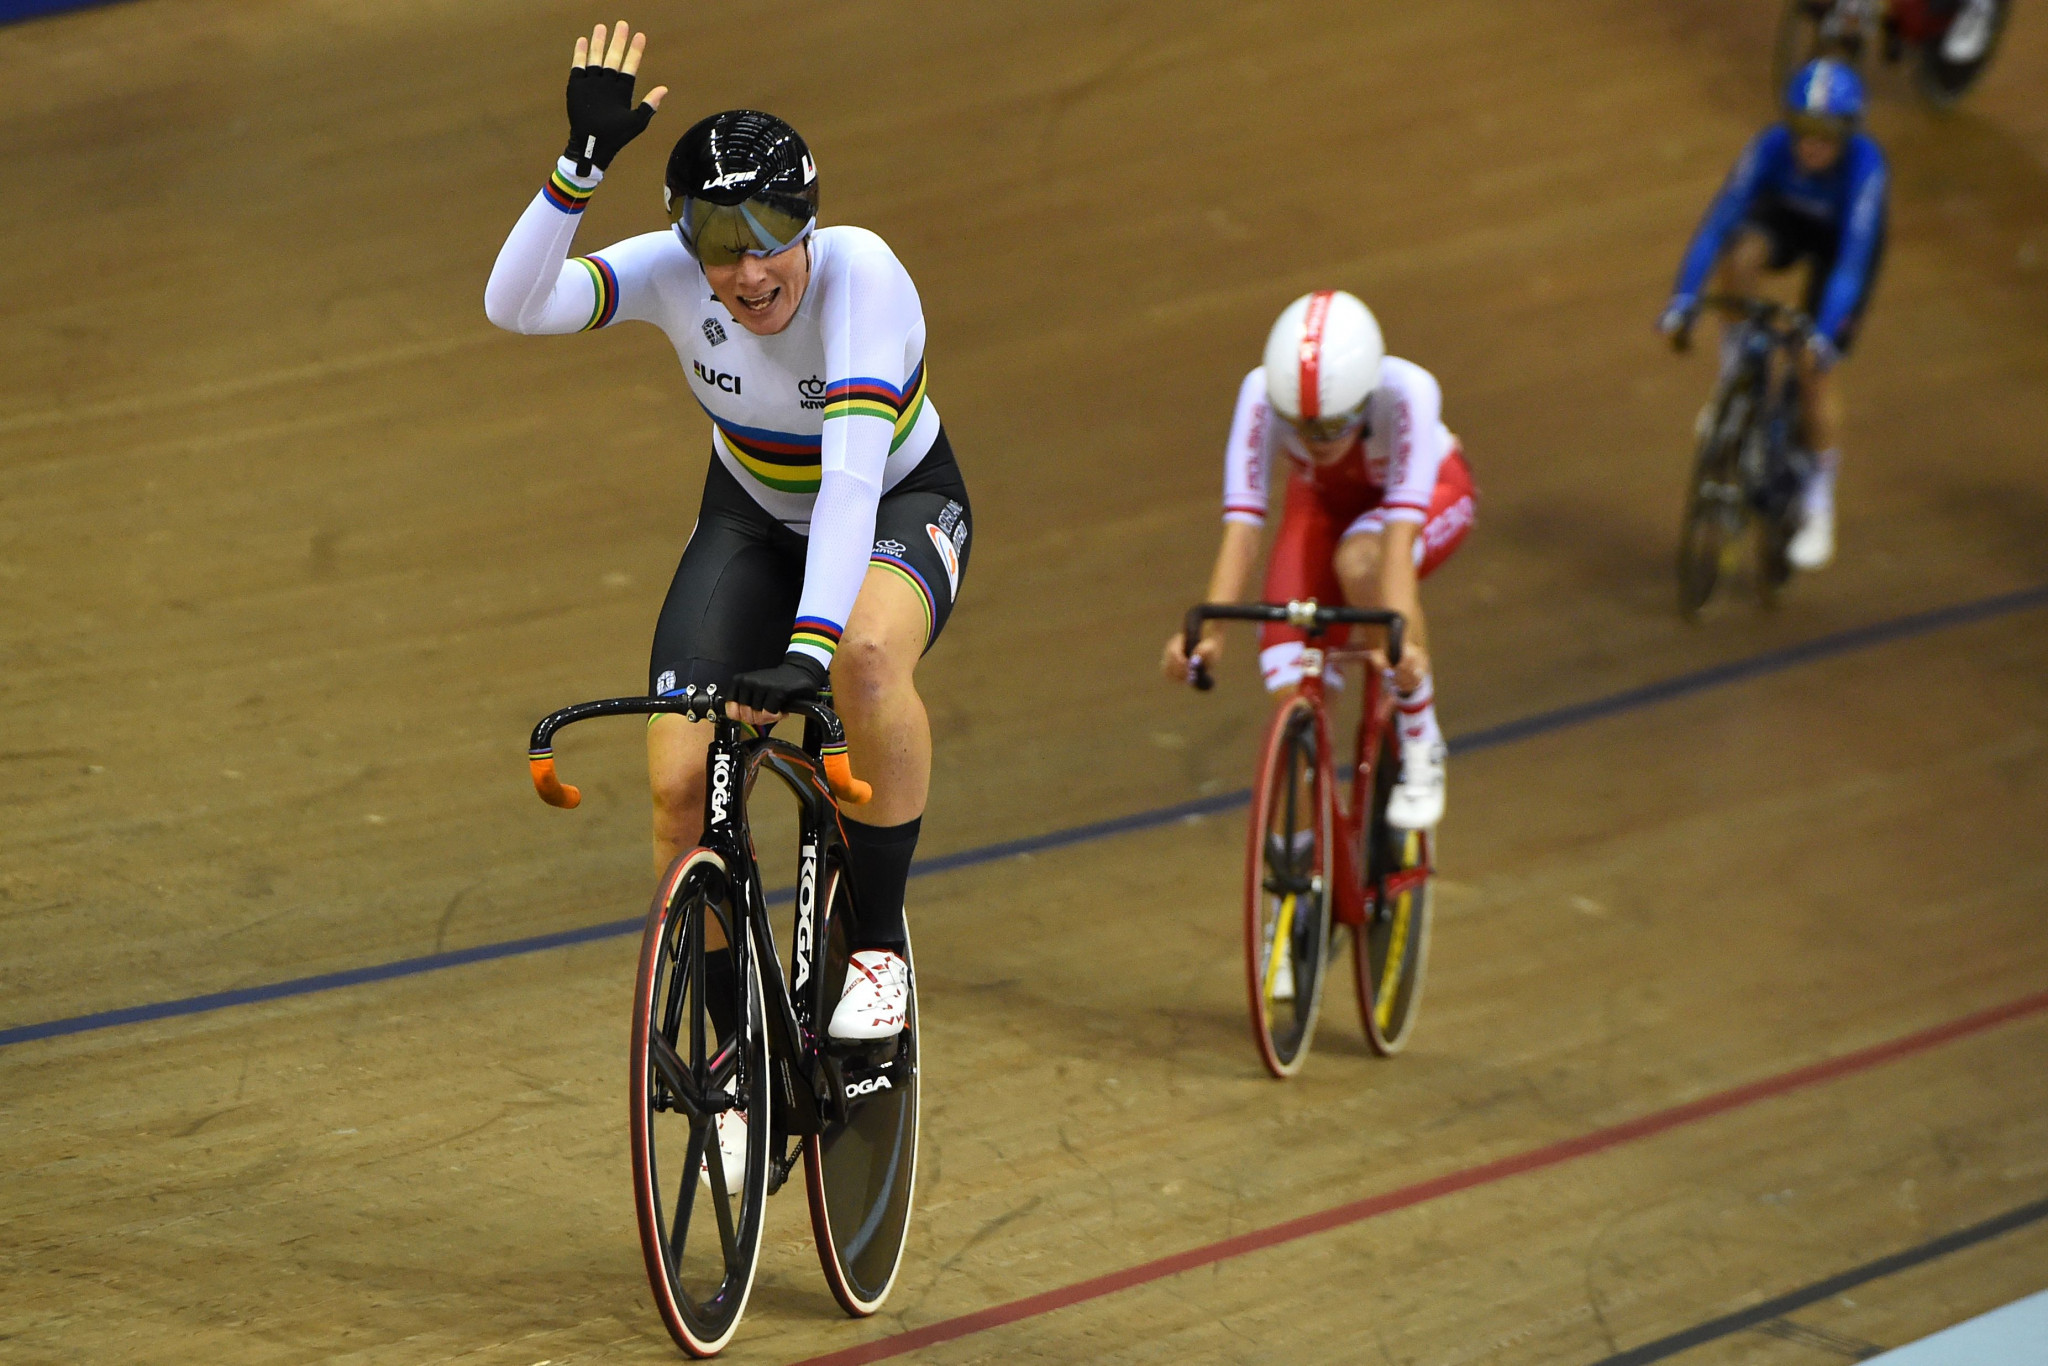 Wild wins omnium duel with Archibald to claim second gold at European Championships